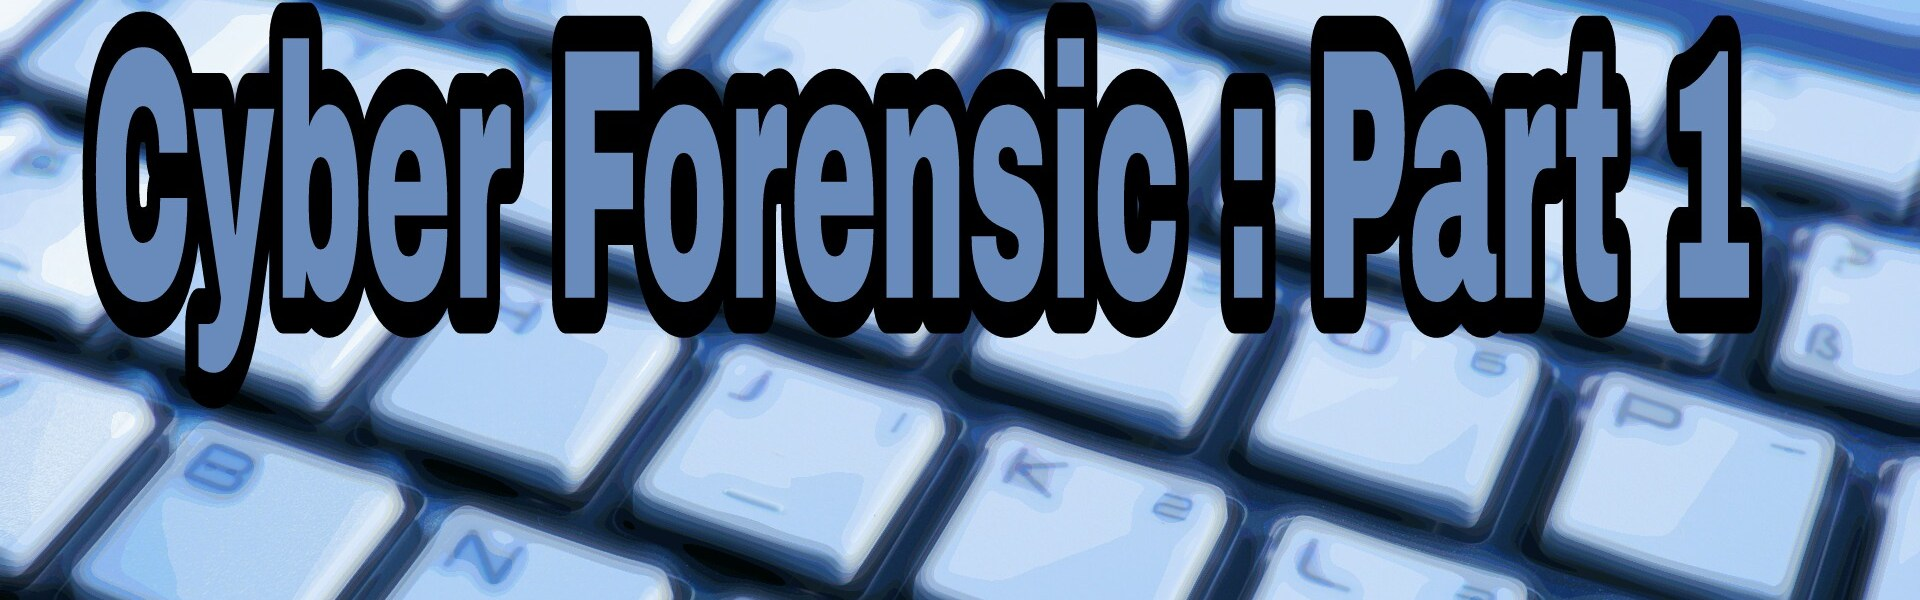 Computer Forensics: Windows Forensics Part:1